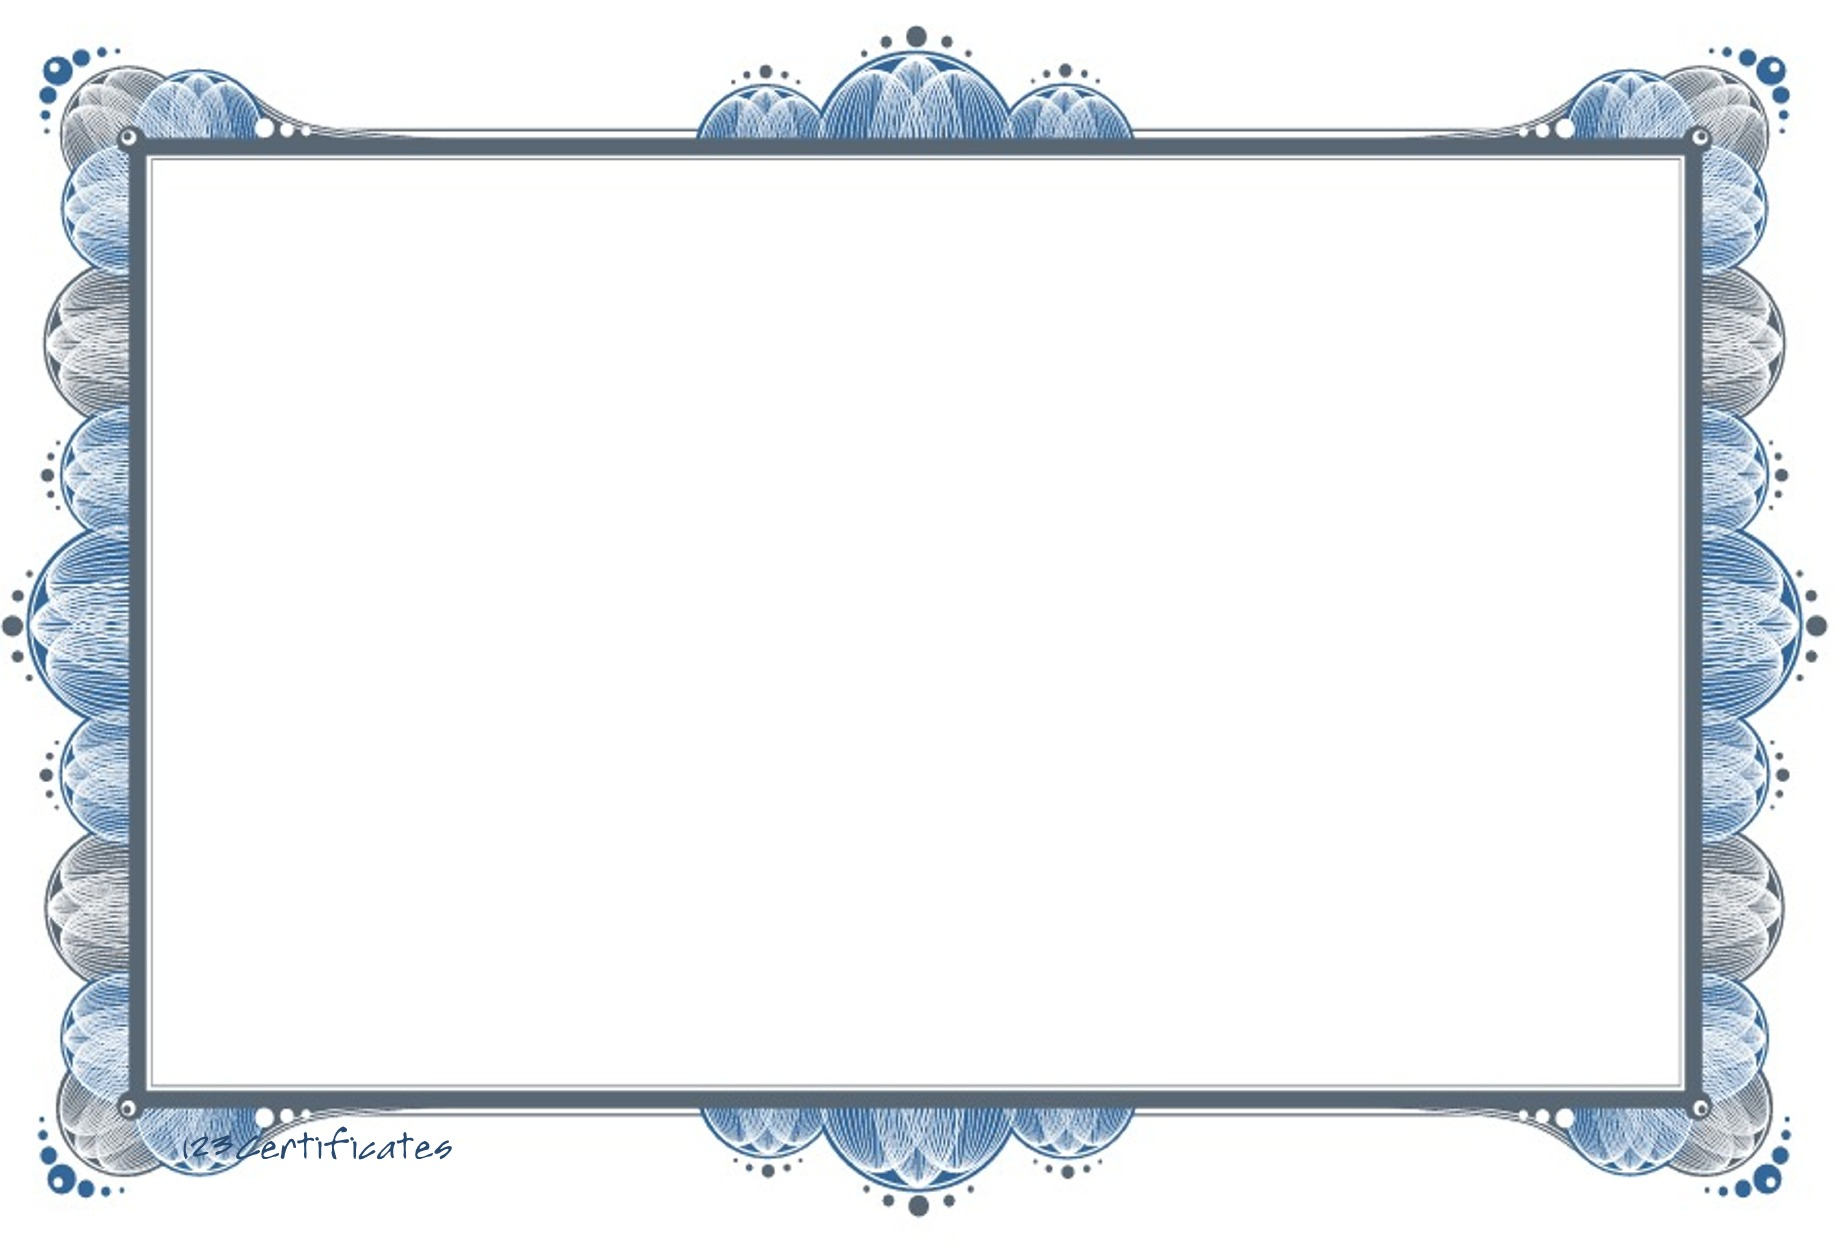 Free certificate borders to download, certificate templates for